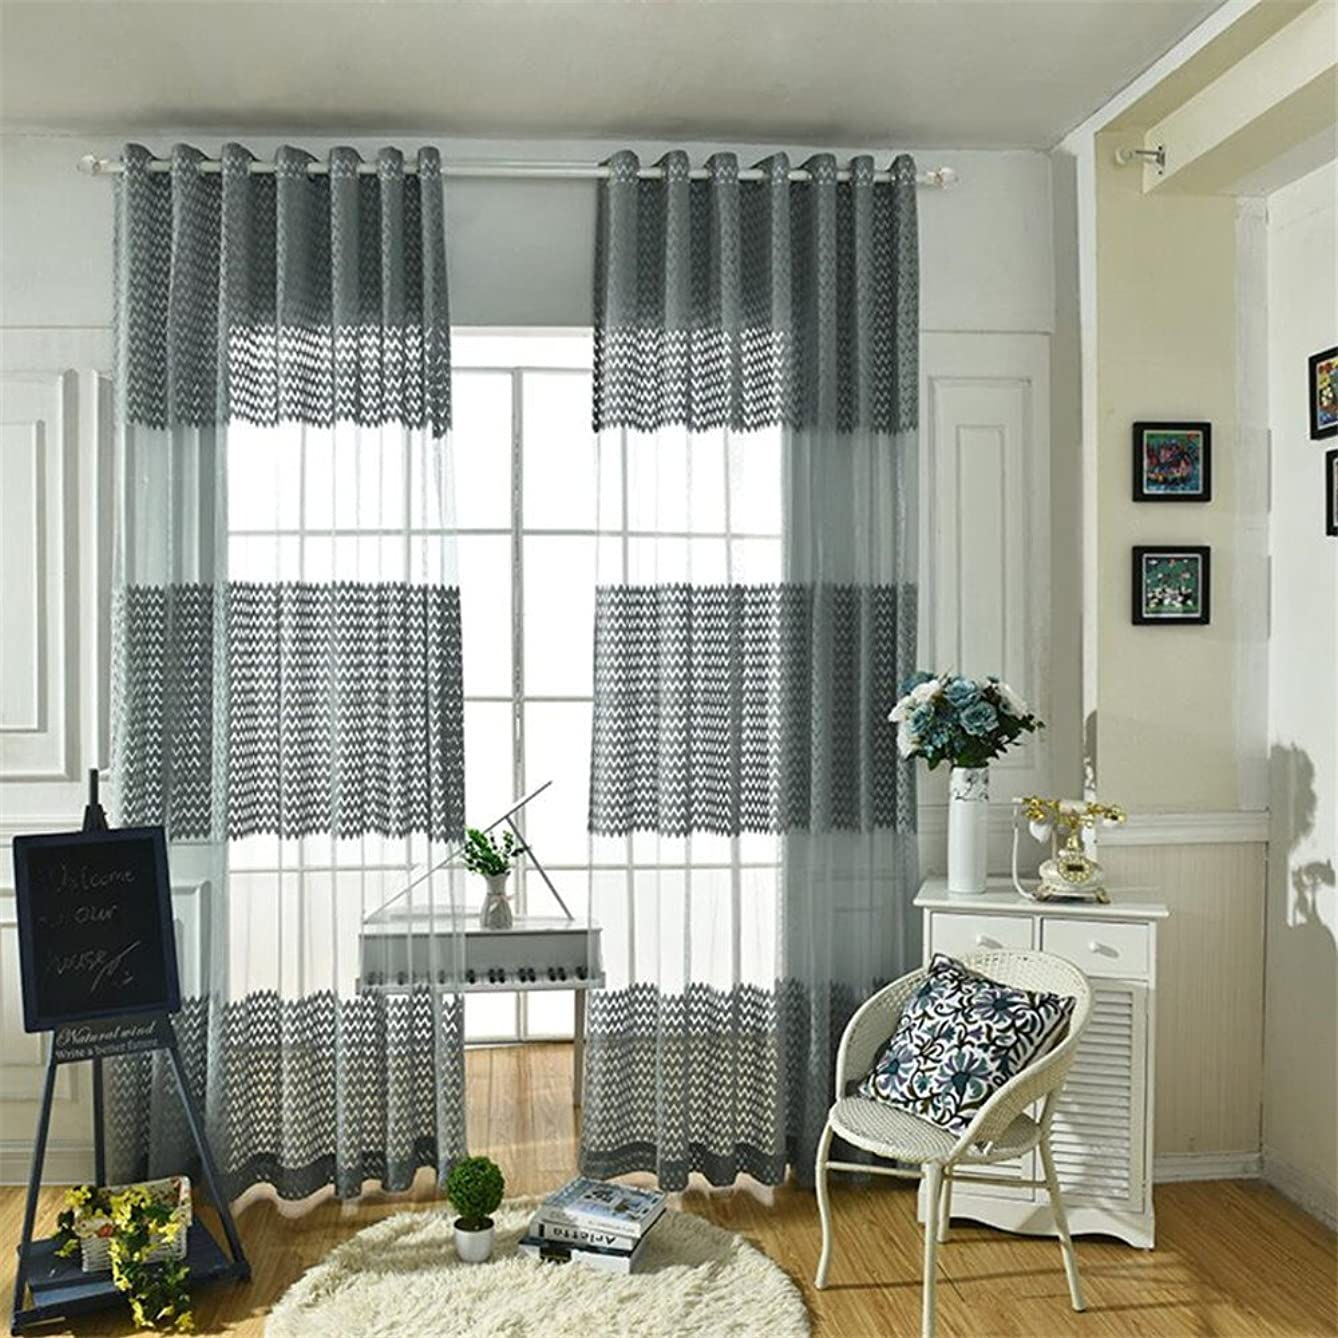 eTRY Gray Chevron Stripe Sheer Curtain Panel for Living Room Bedroom Window Treatment Drapes Grommet Top 52 x 96 Inch 1 Panel